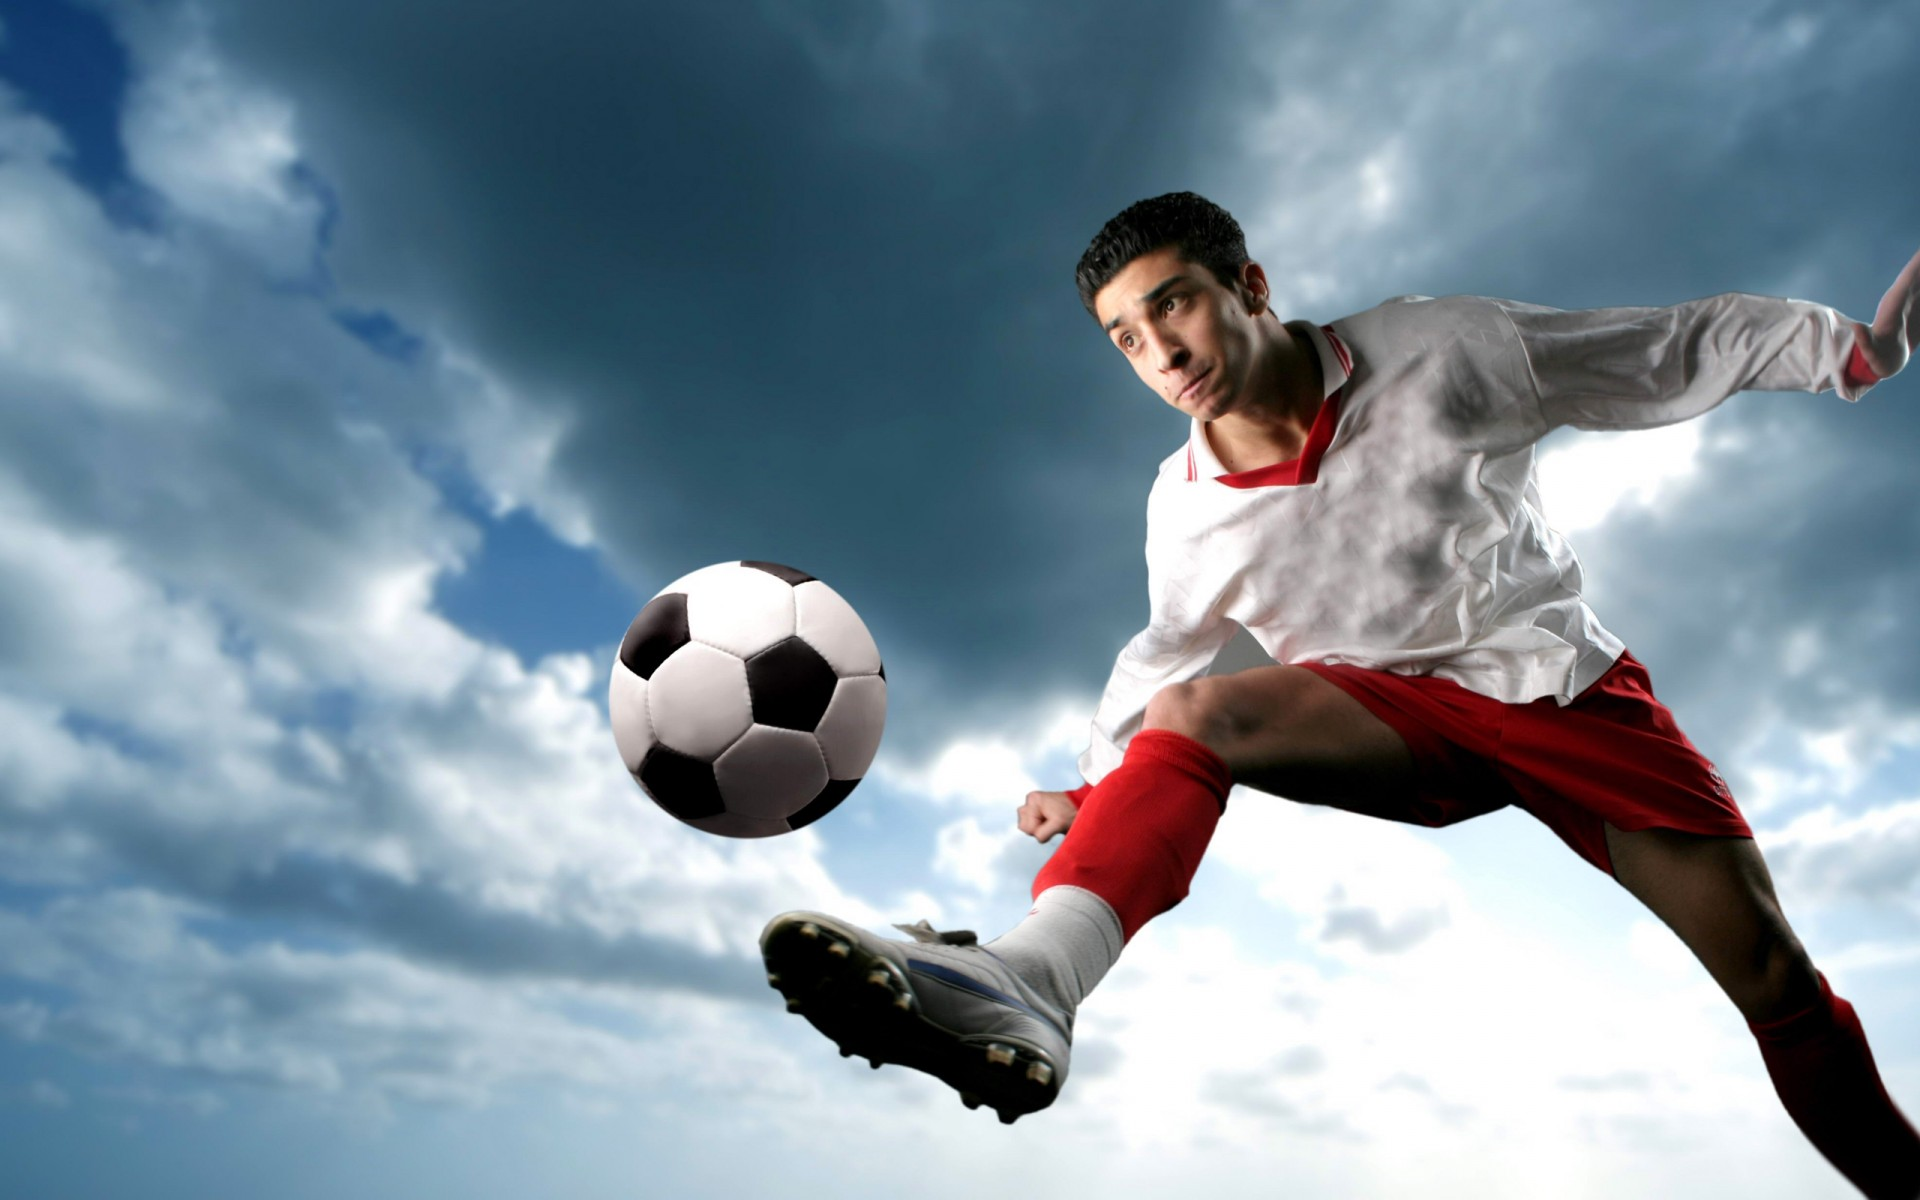 People playing soccer pictures Brian Mcknight Images, Stock Photos Vectors Shutterstock